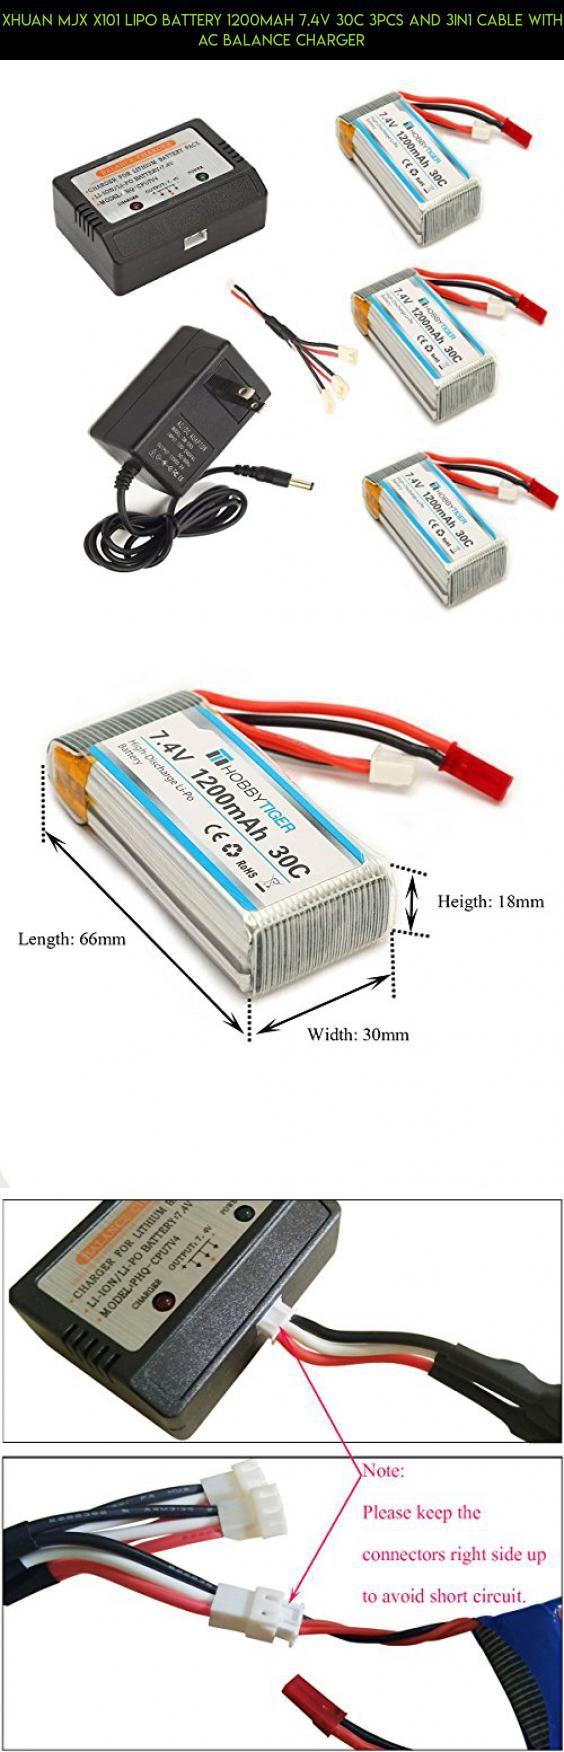 XHuan mjx x101 Lipo Battery 1200mAh 7.4V 30C 3pcs and 3in1 Cable with AC Balance Charger #parts #fpv #battery #kit #tech #technology #racing #drone #shopping #plans #products #mjx #drone #camera #gadgets